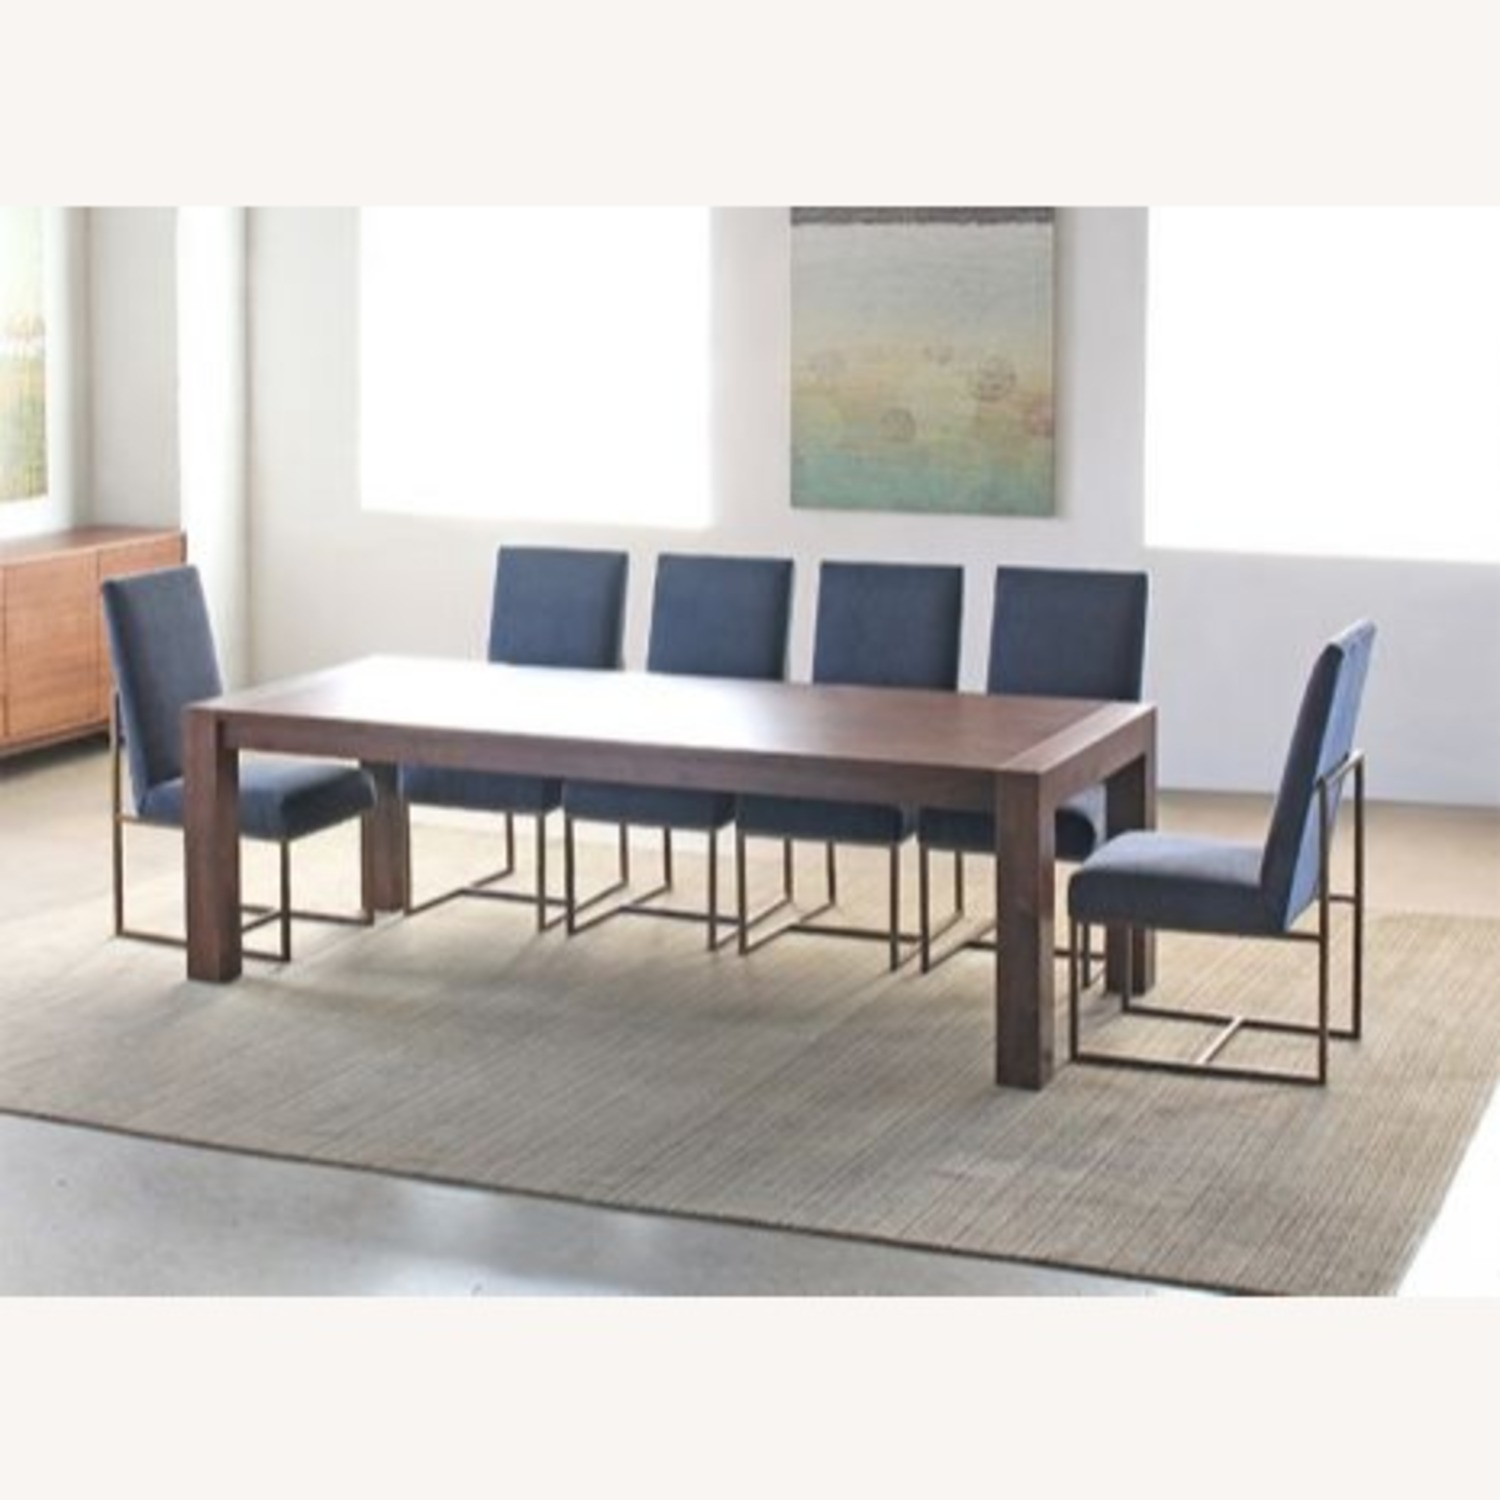 Mitchell Gold + Bob Williams Halsted Dining Table - image-1